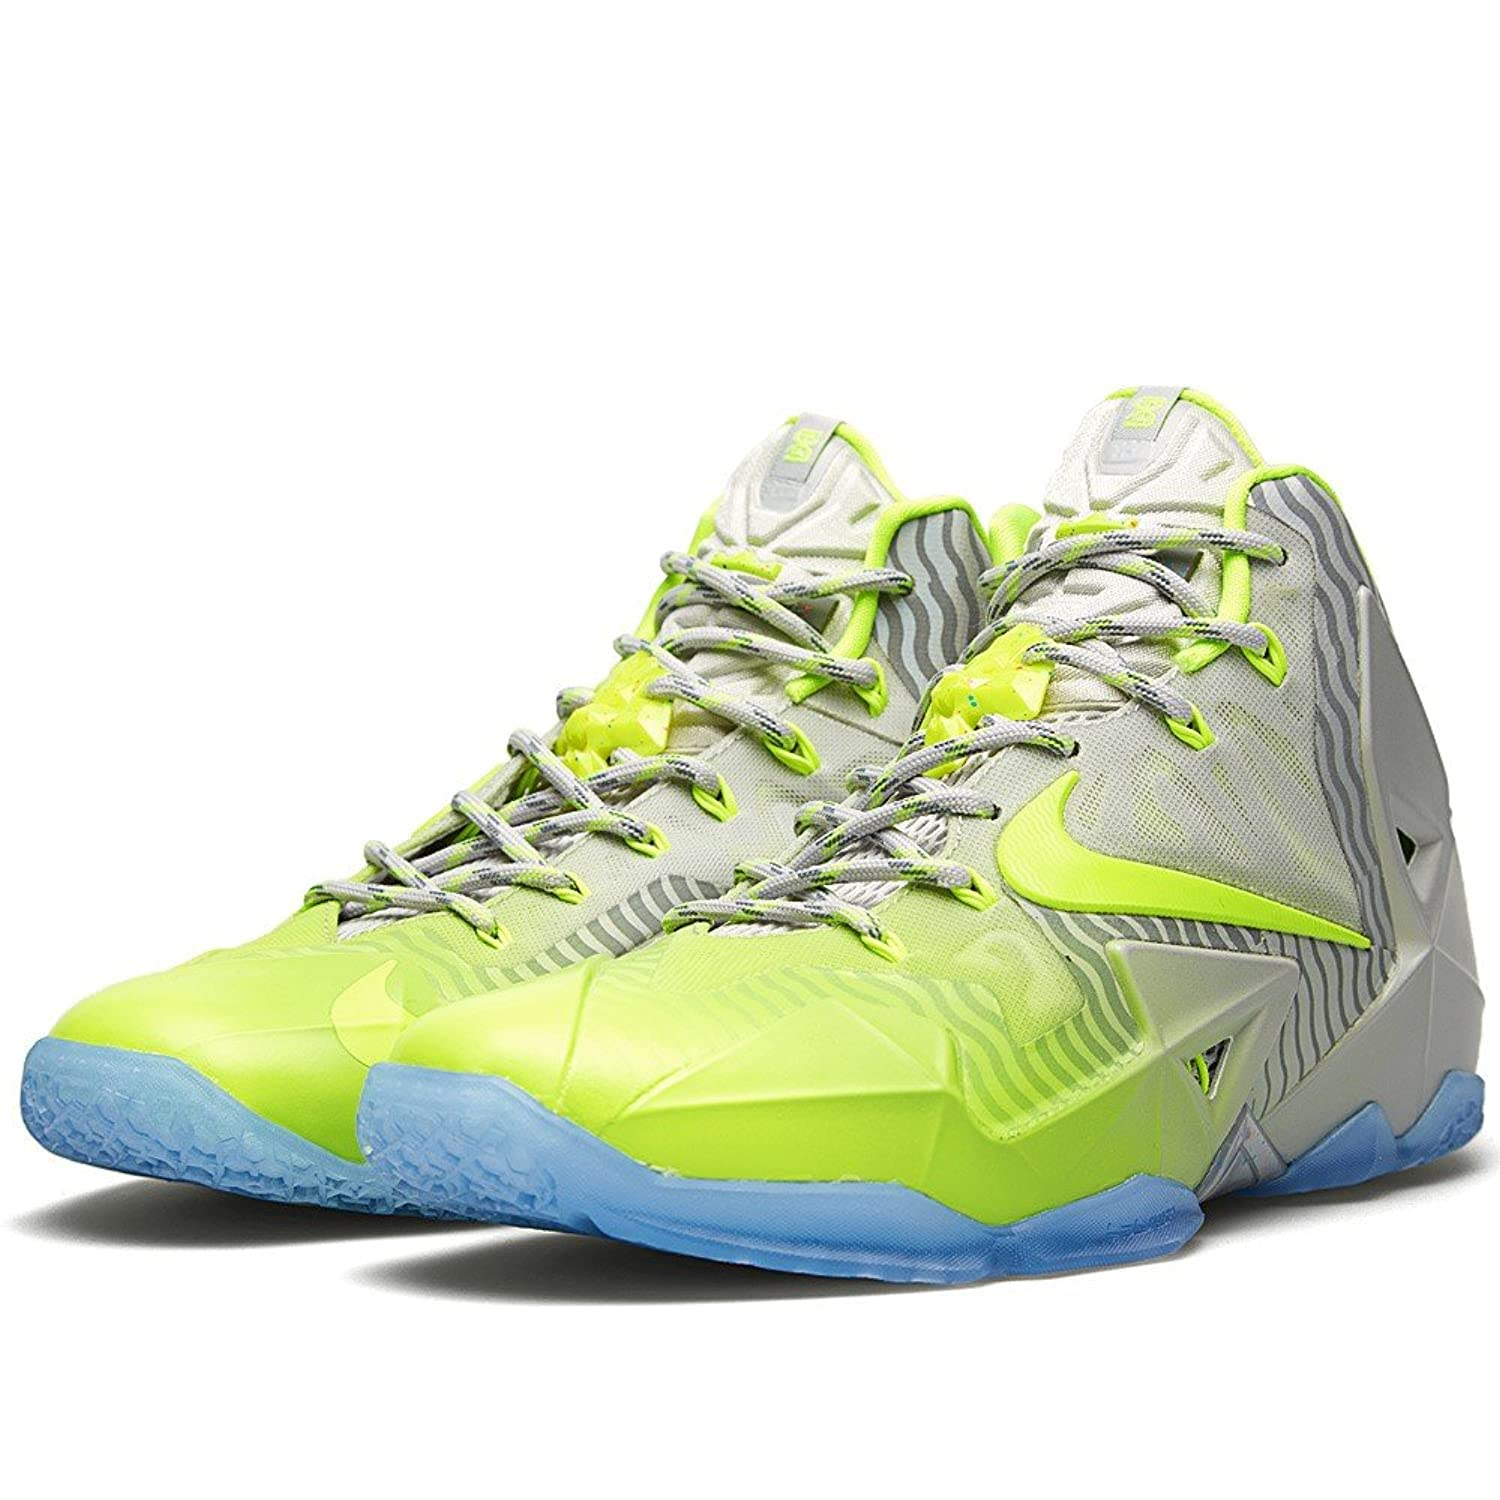 Images for Nike LeBron 11 Collection Maison Men's Basketball Shoes  683252-074, 14 D(M) US